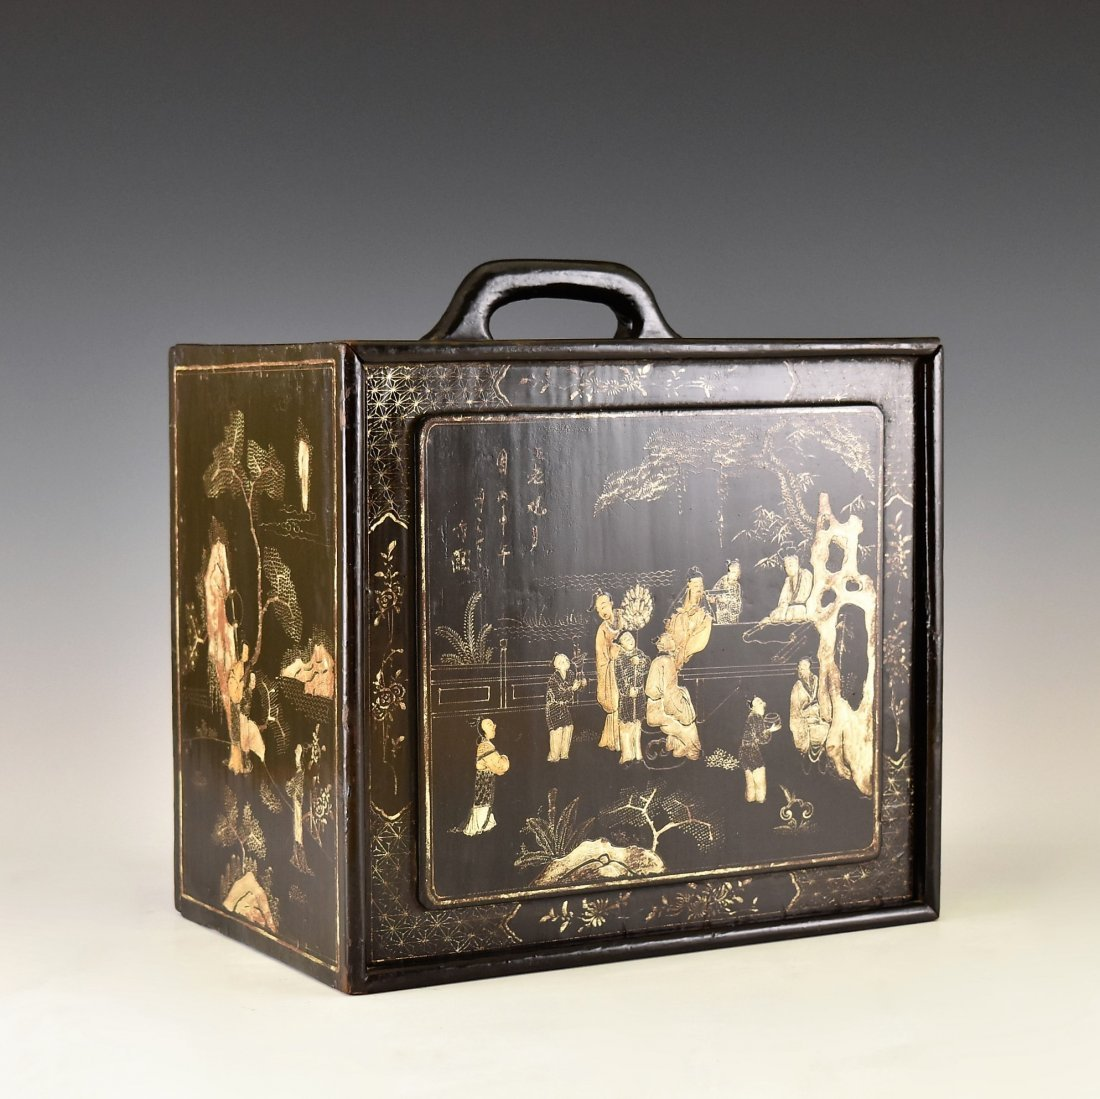 ANTIQUE CHINESE EBONY LACQUER BOX, 19TH C